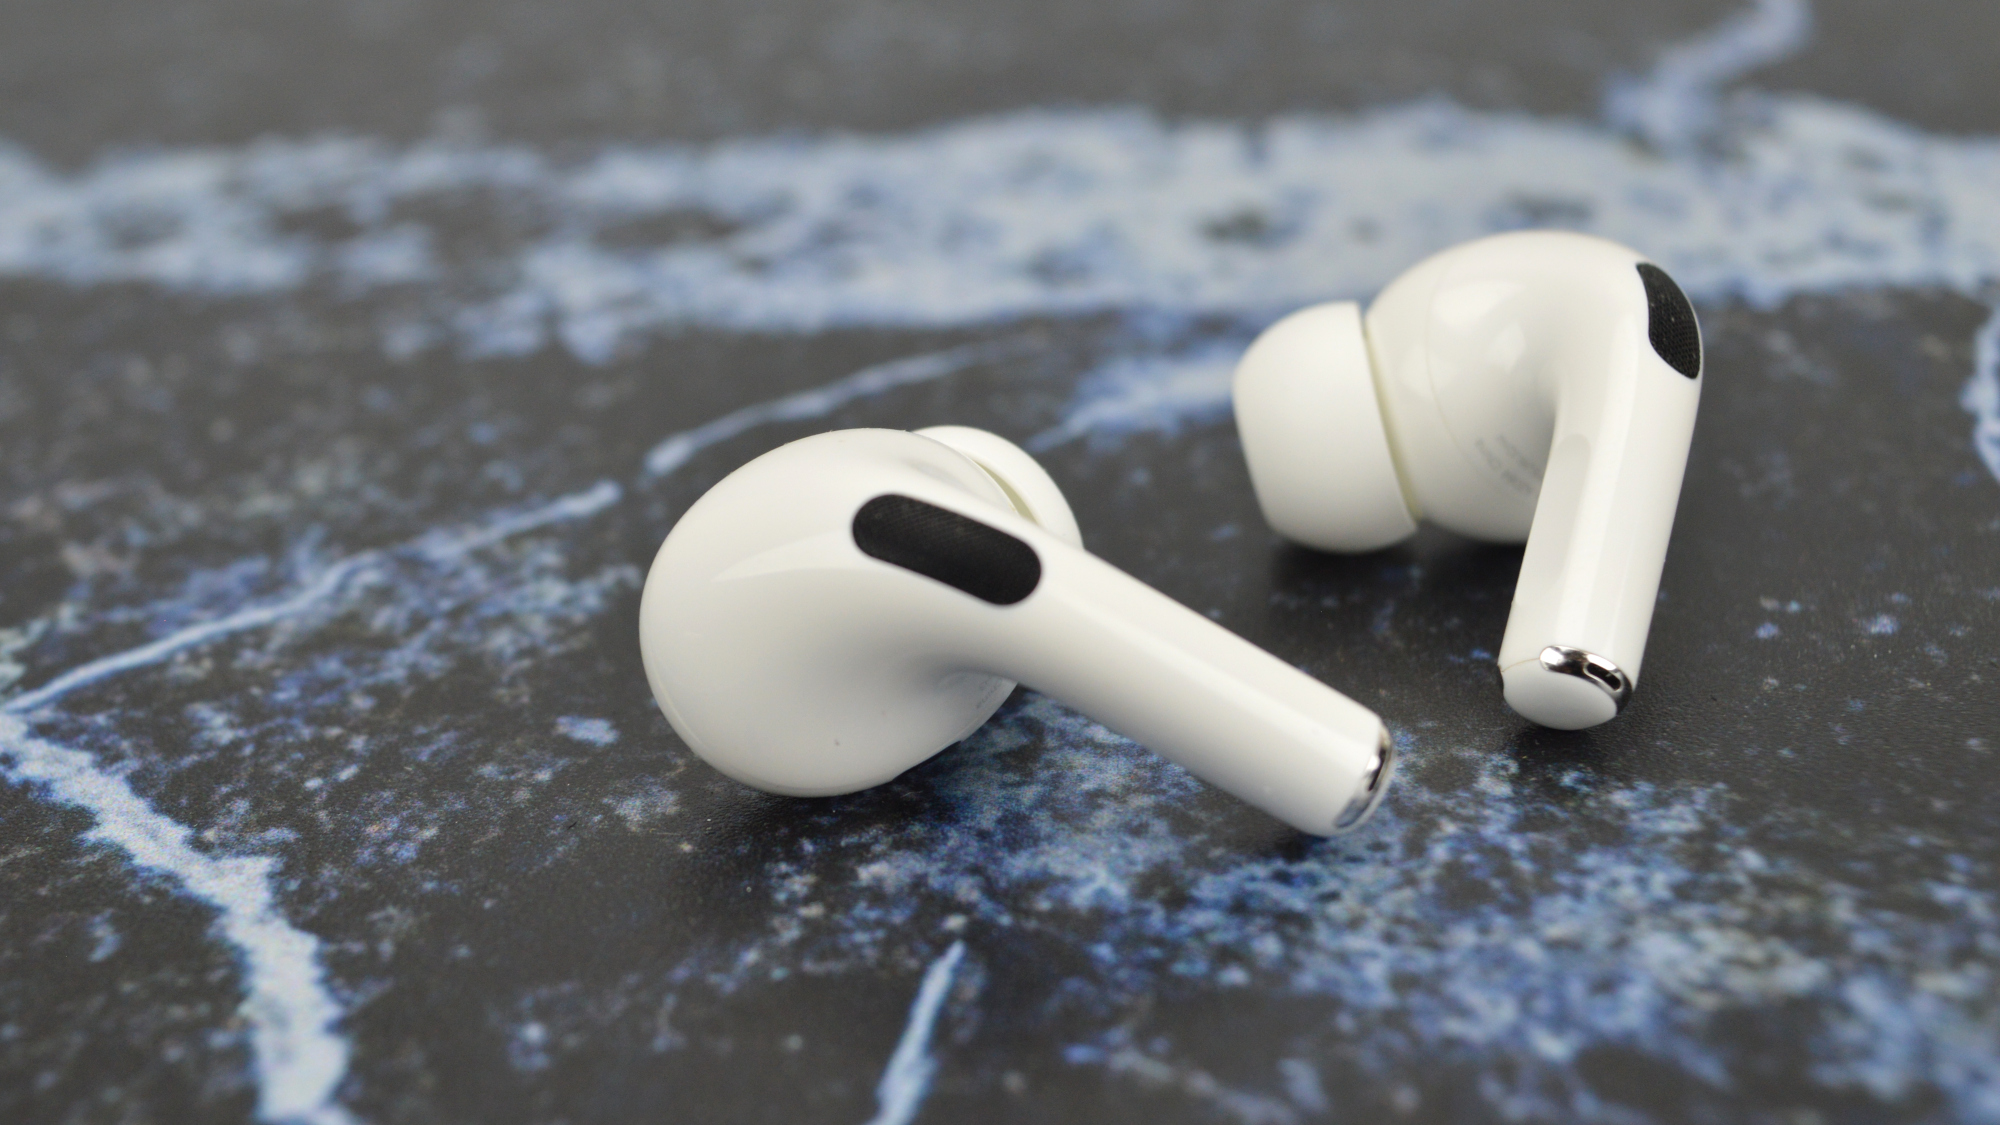 Apple AirPods Pro Buds 2